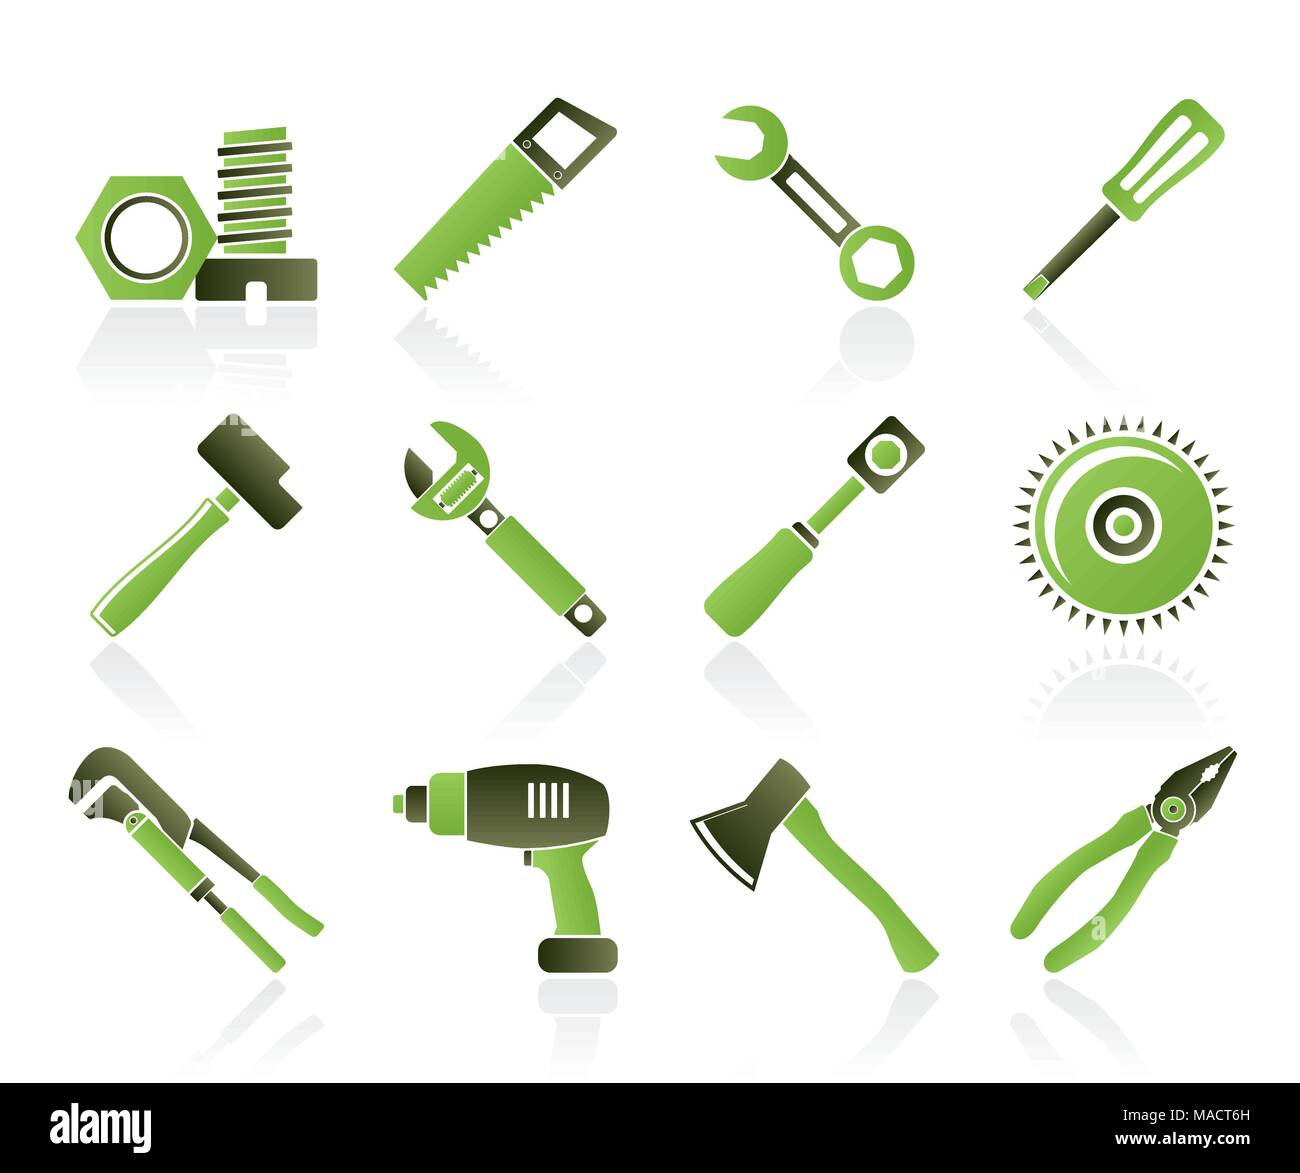 icon saw hammer symbol equipment stockfotos icon saw hammer symbol equipment bilder alamy. Black Bedroom Furniture Sets. Home Design Ideas